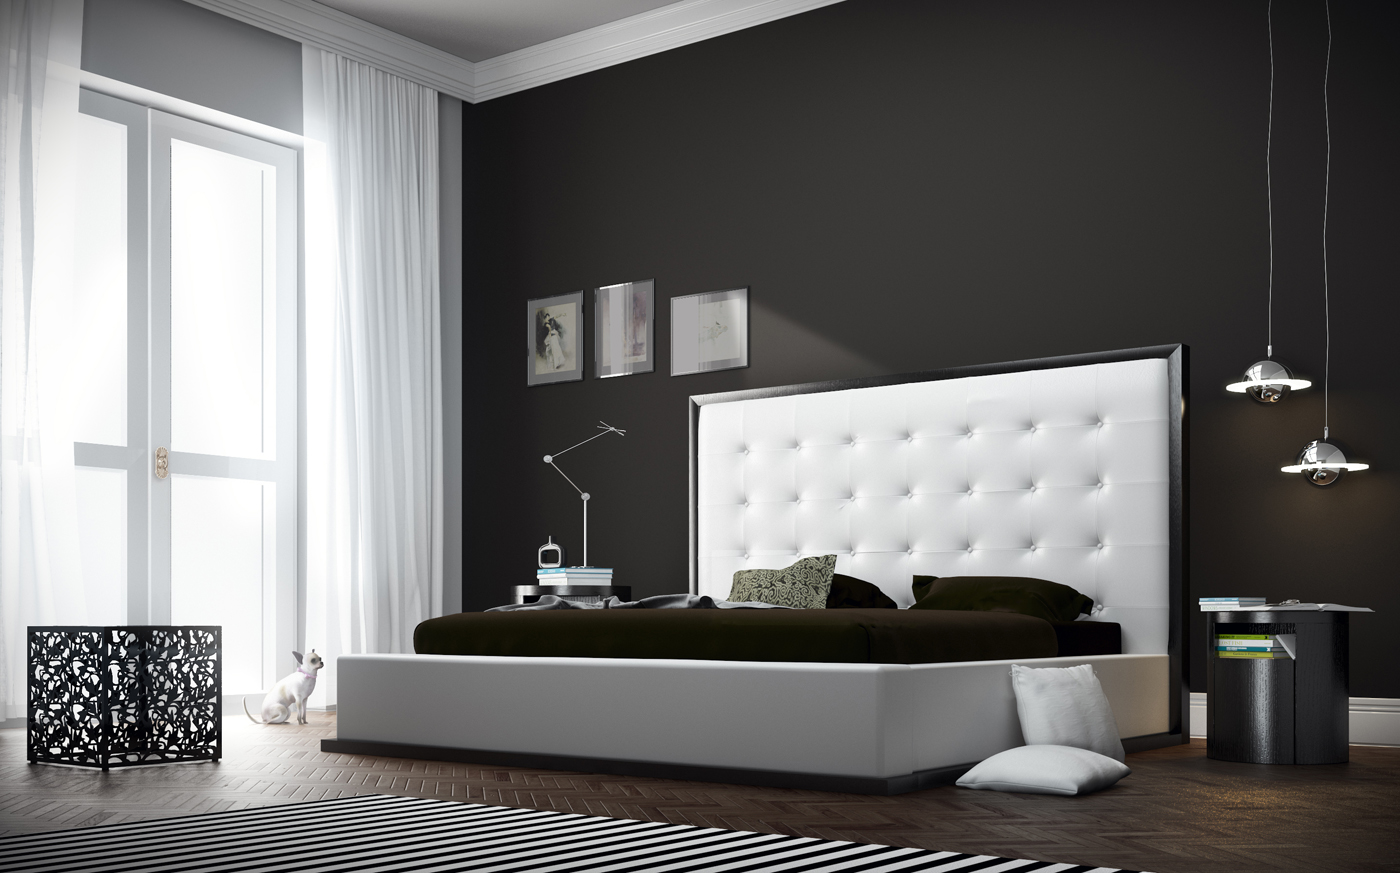 Noticeable striped black and white rug balances the dark room